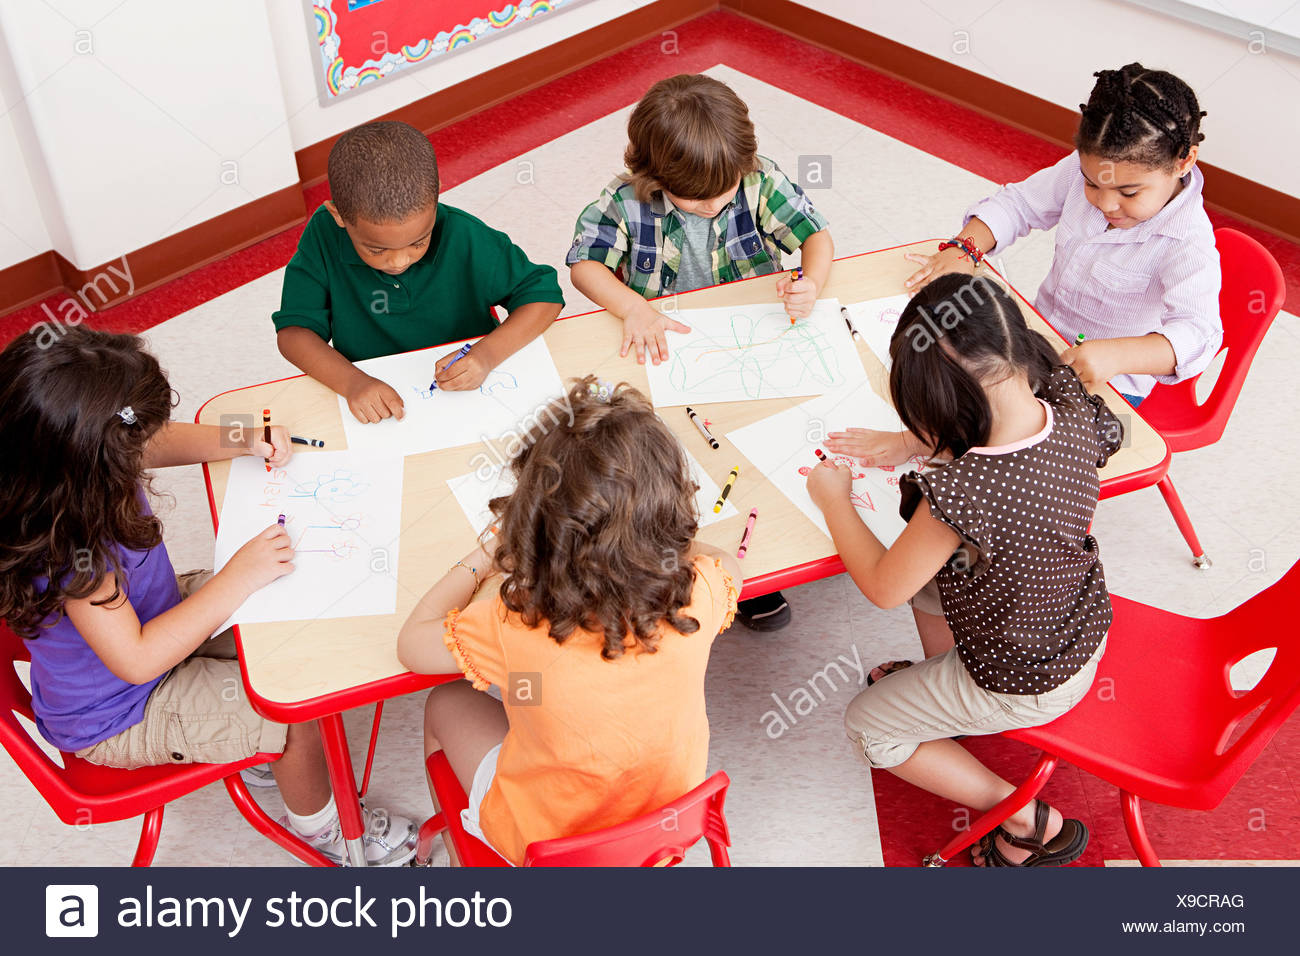 Children drawing at school - Stock Image